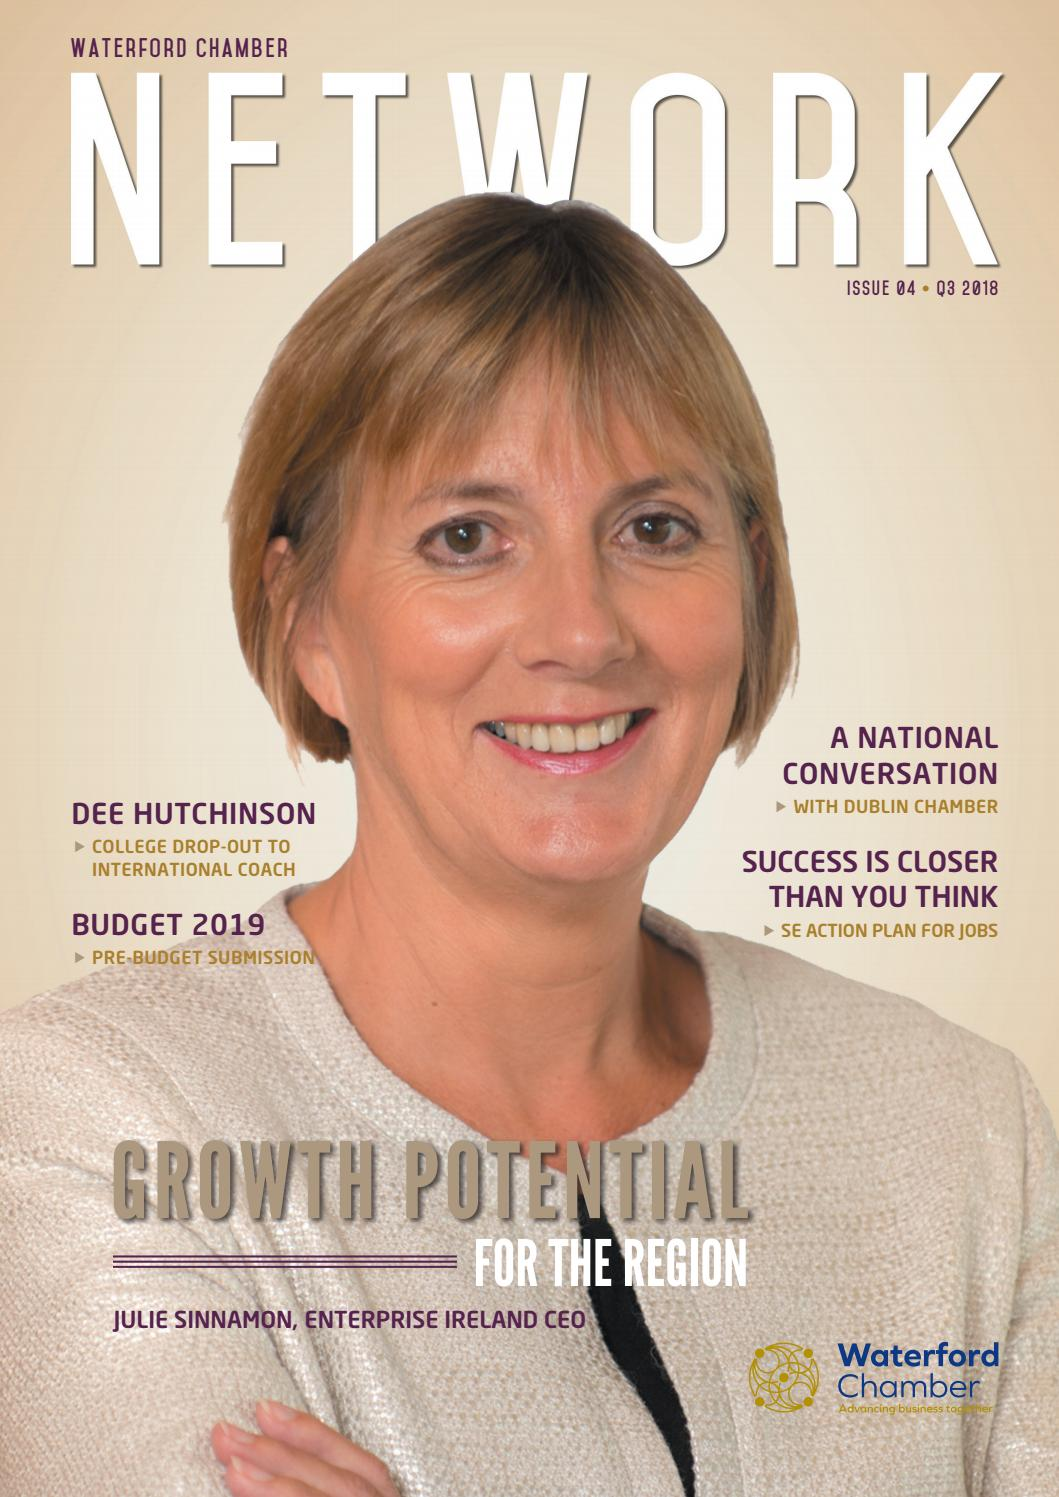 Network - Issue 04 - Q3 2018 by Waterford Chamber - issuu